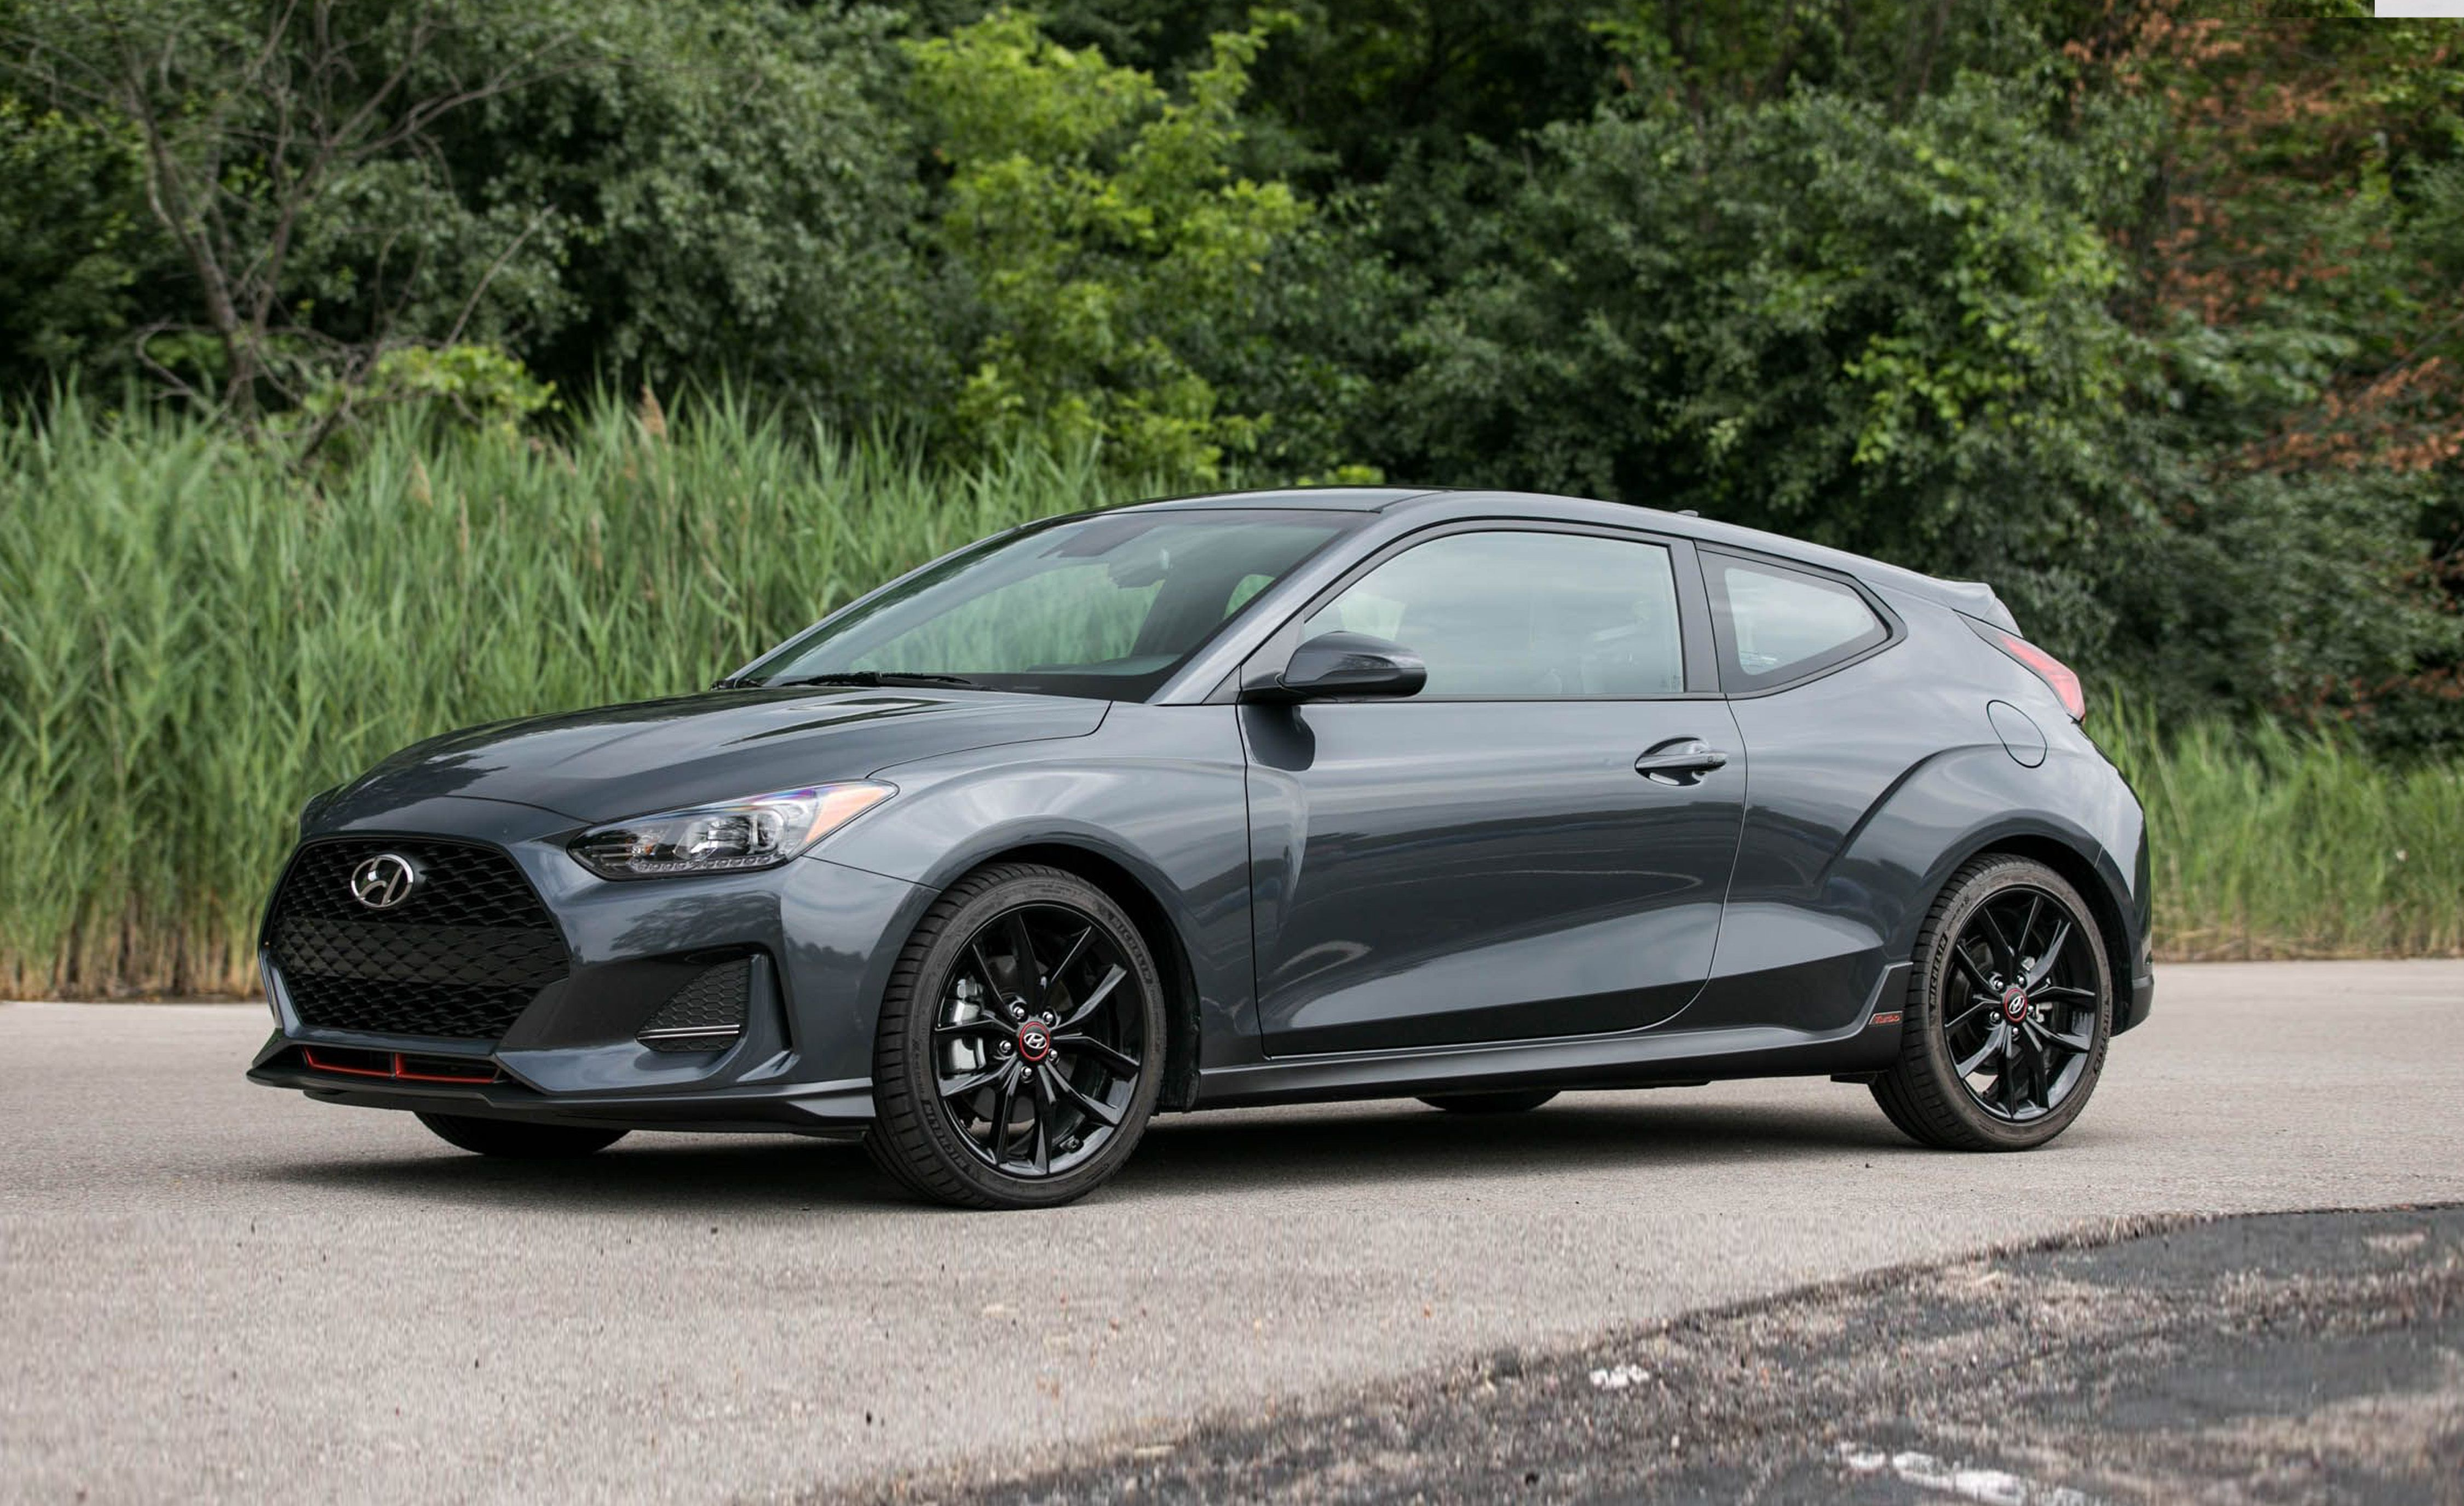 hyundai veloster reviews hyundai veloster price   specs car  driver